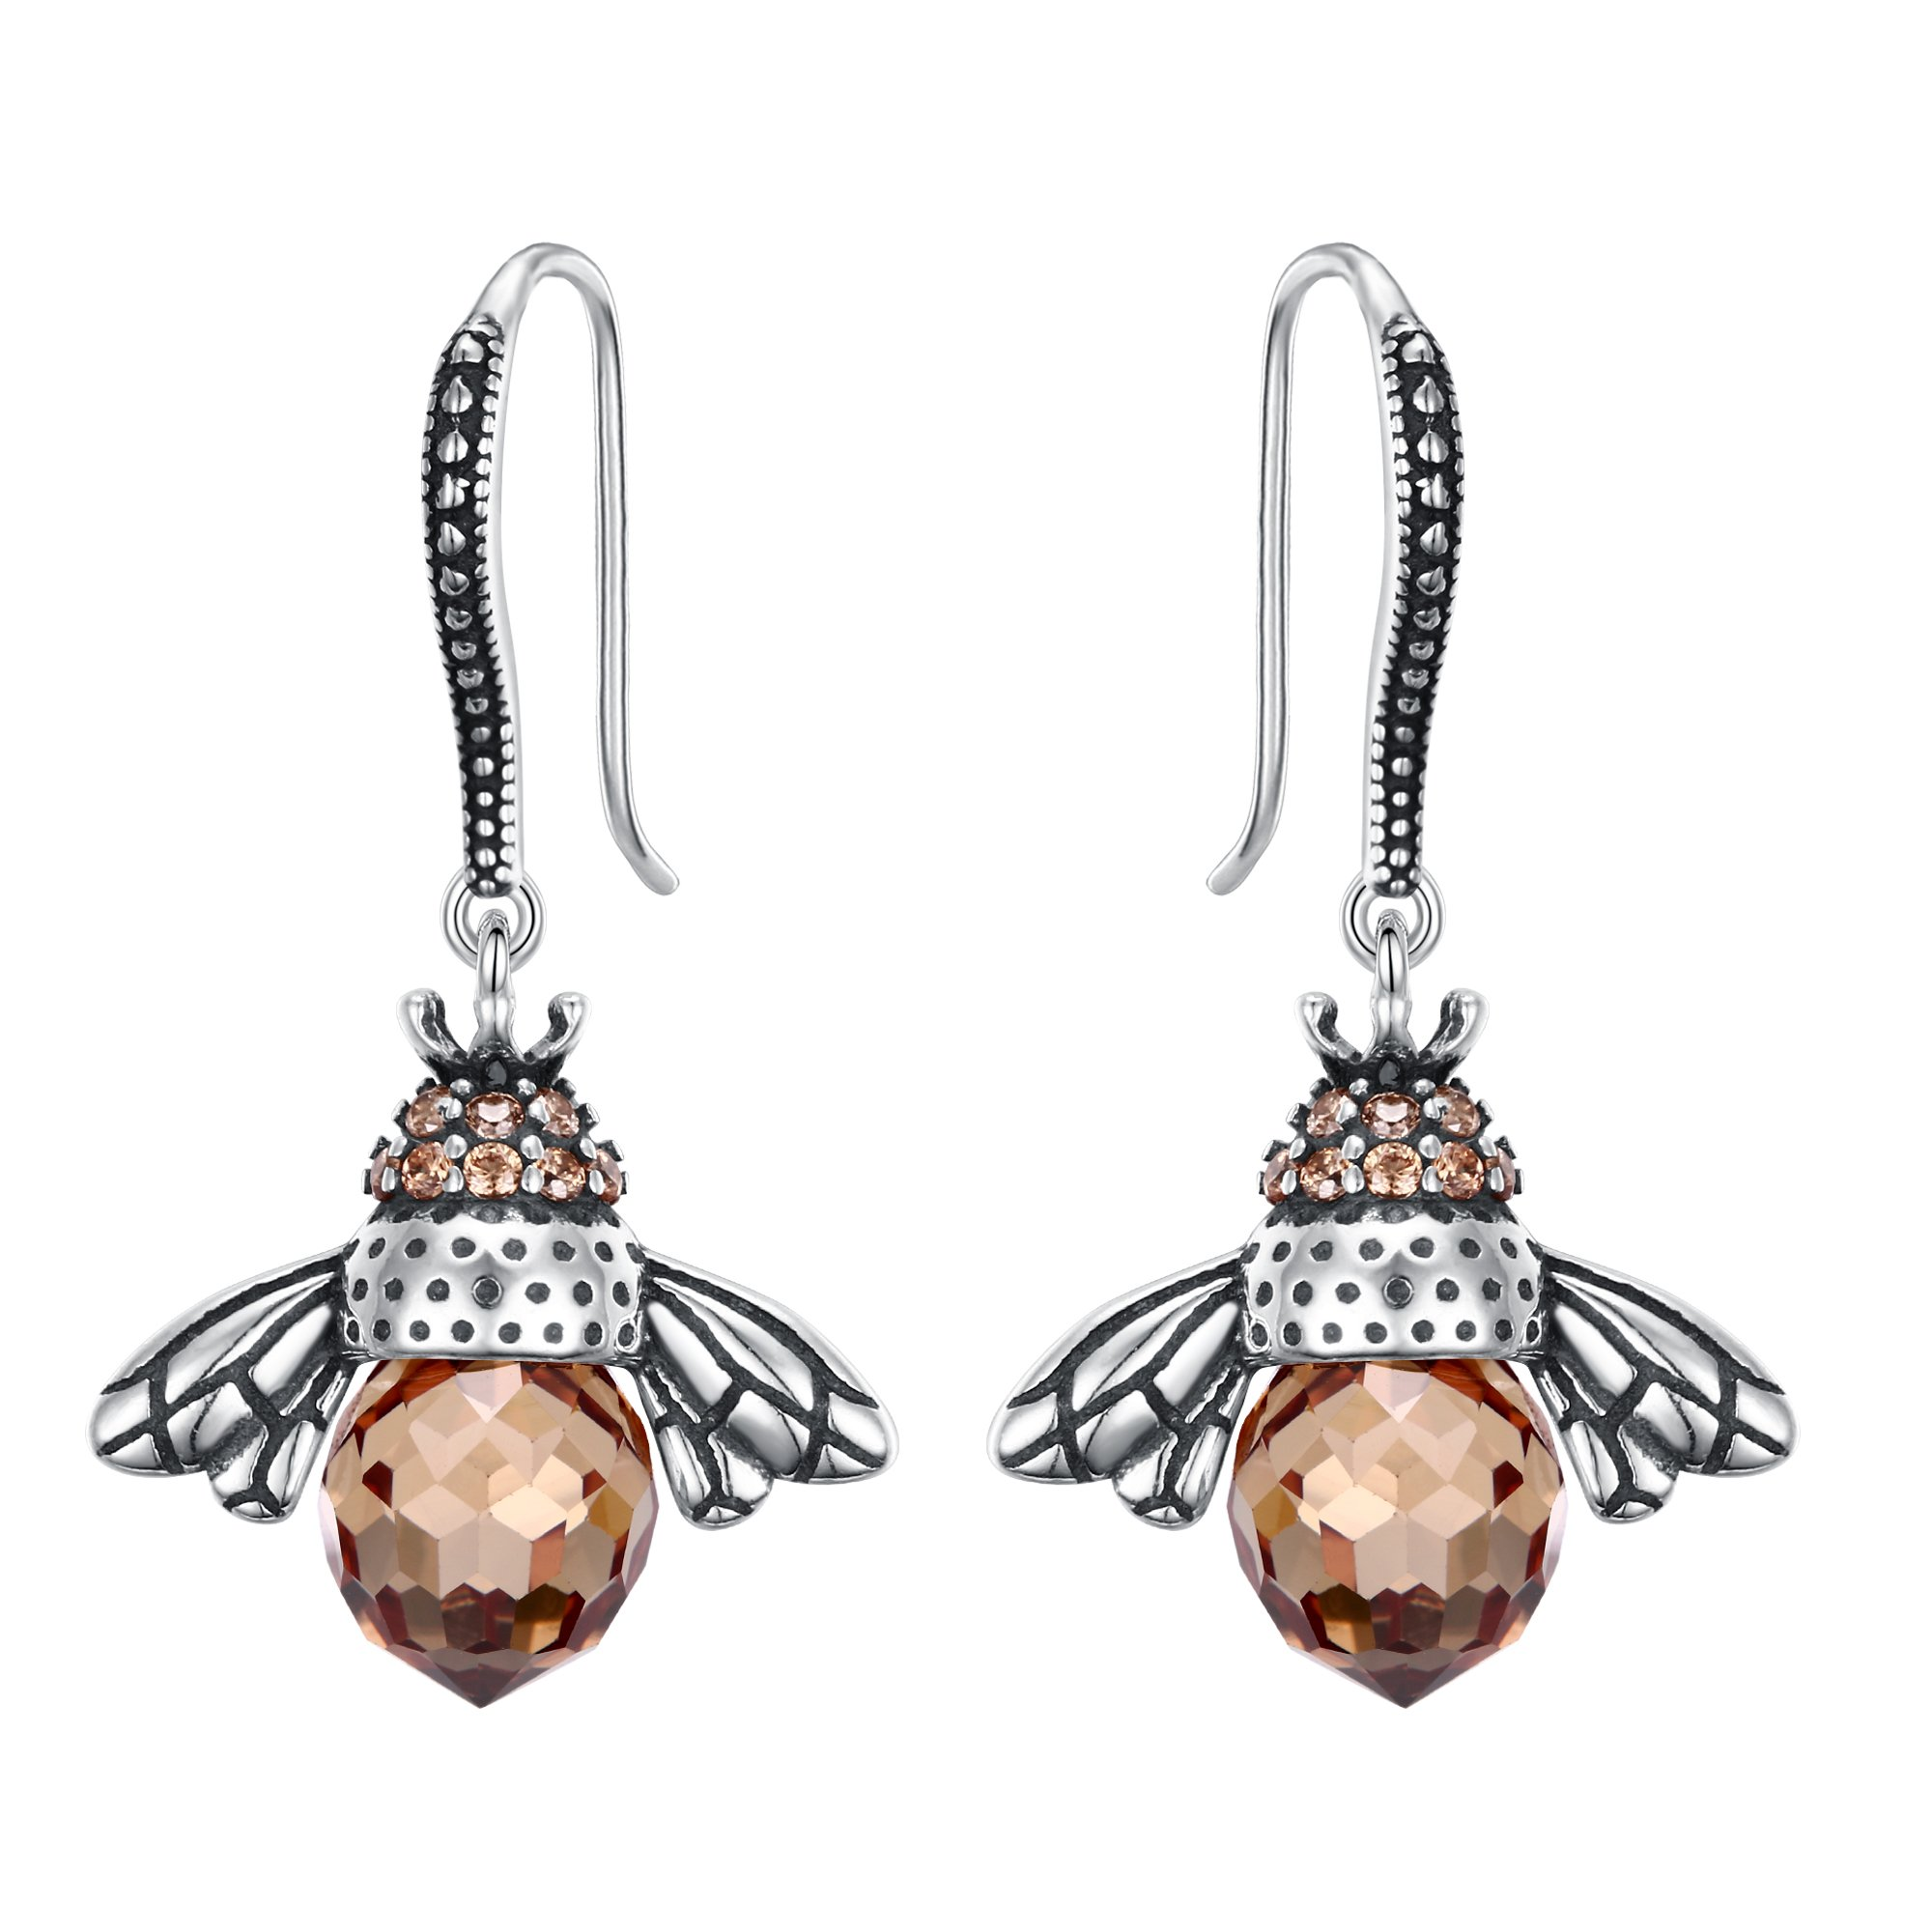 EleQueen 925 Sterling Silver Vintage Inspired Brown Crystals Queen Bee Earrings Jewelry For Women by EleQueen (Image #1)